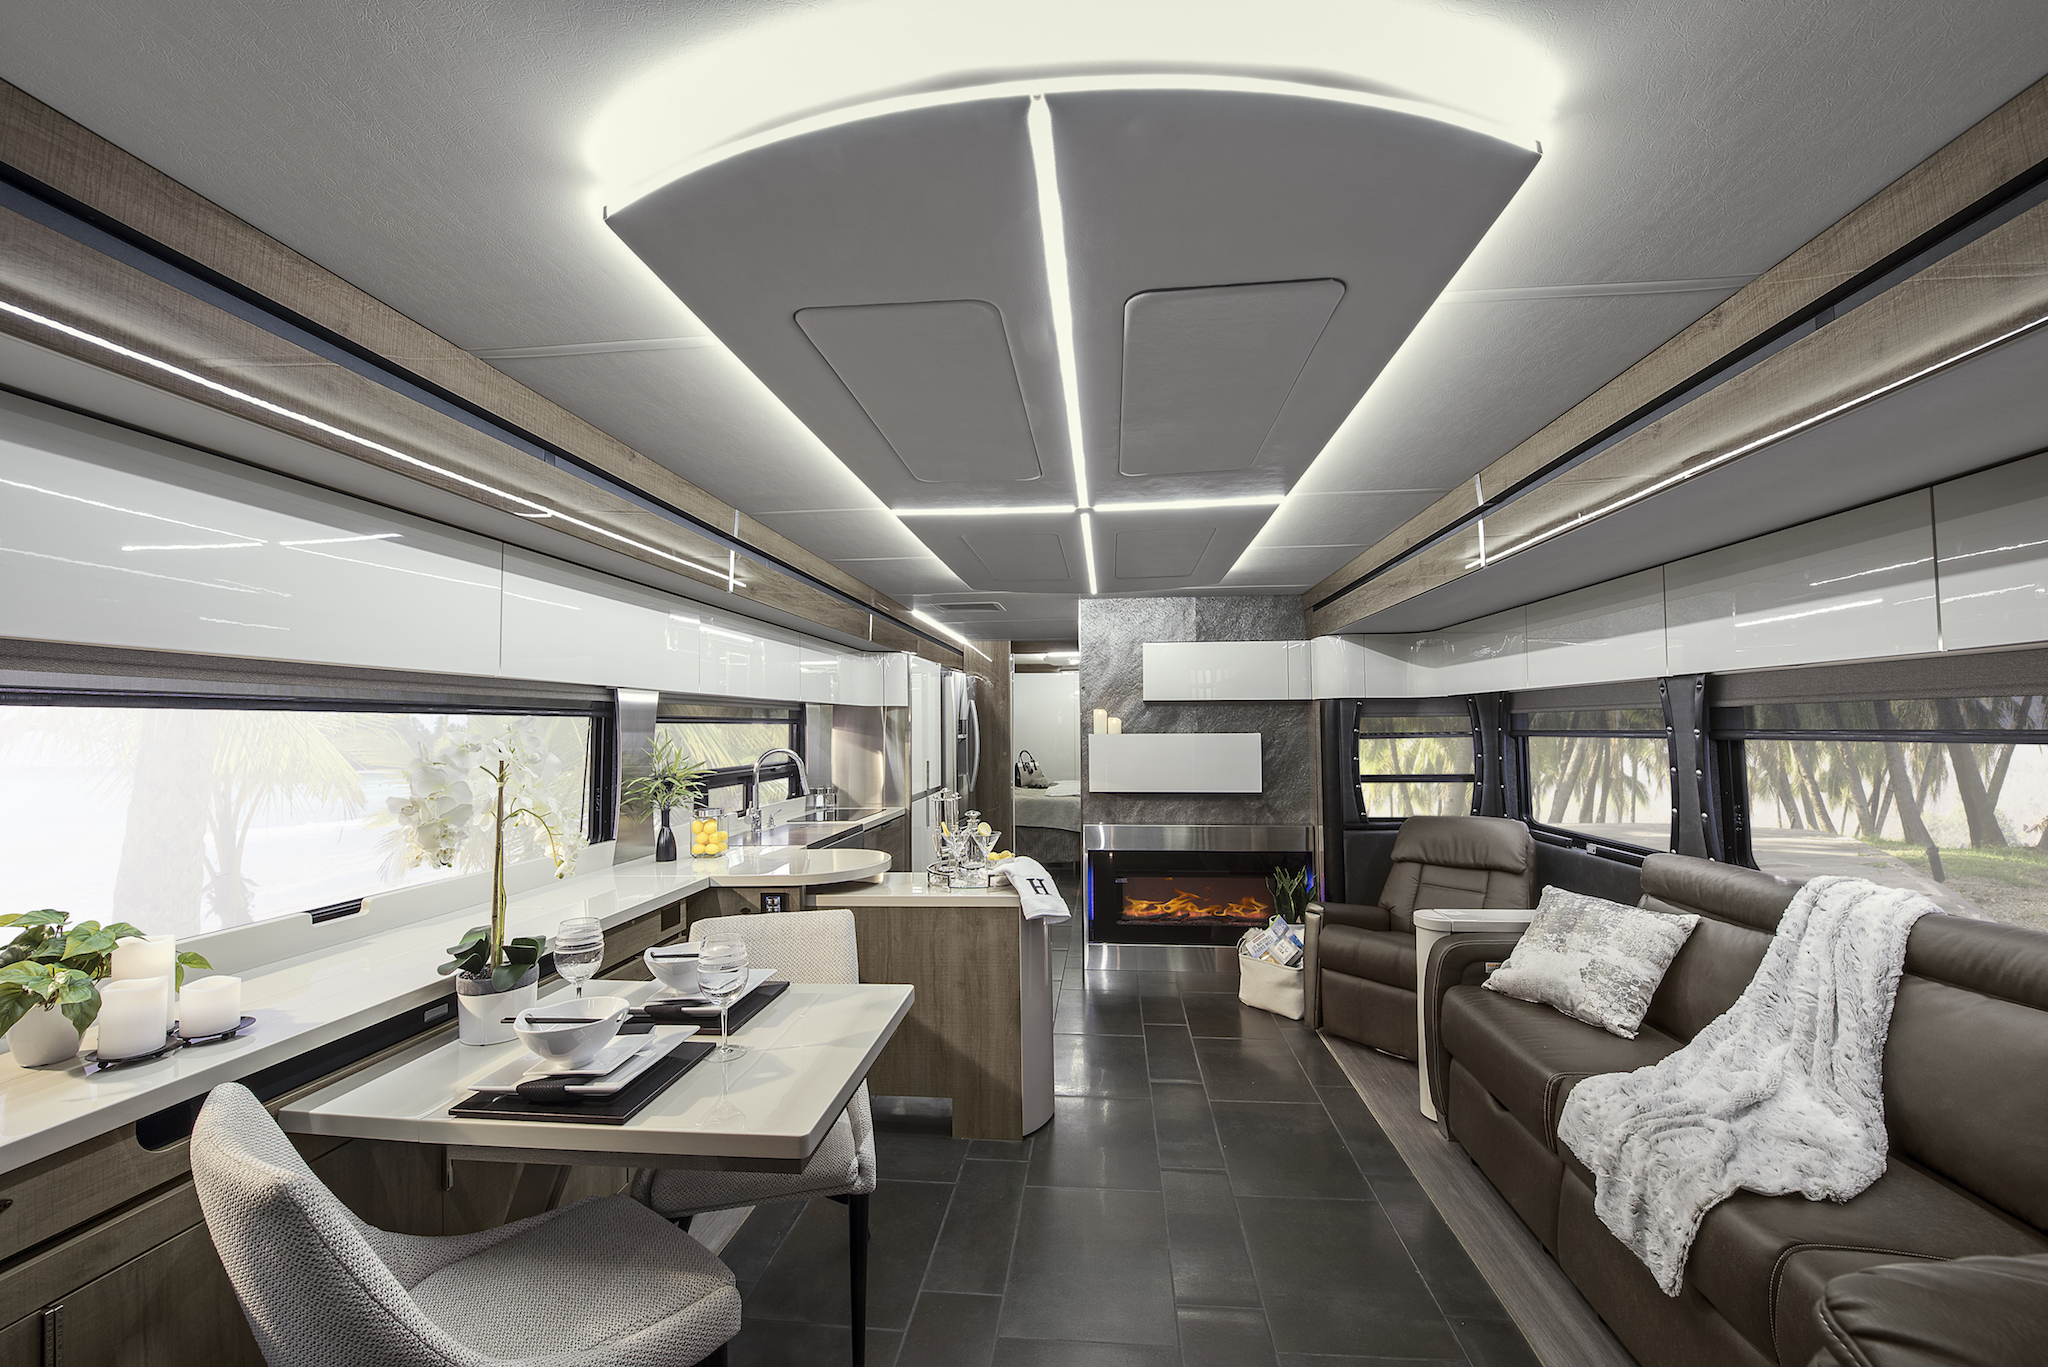 Modern interior of Winnebago Horizon with backlit LED lights on ceiling panel that brighten the space.